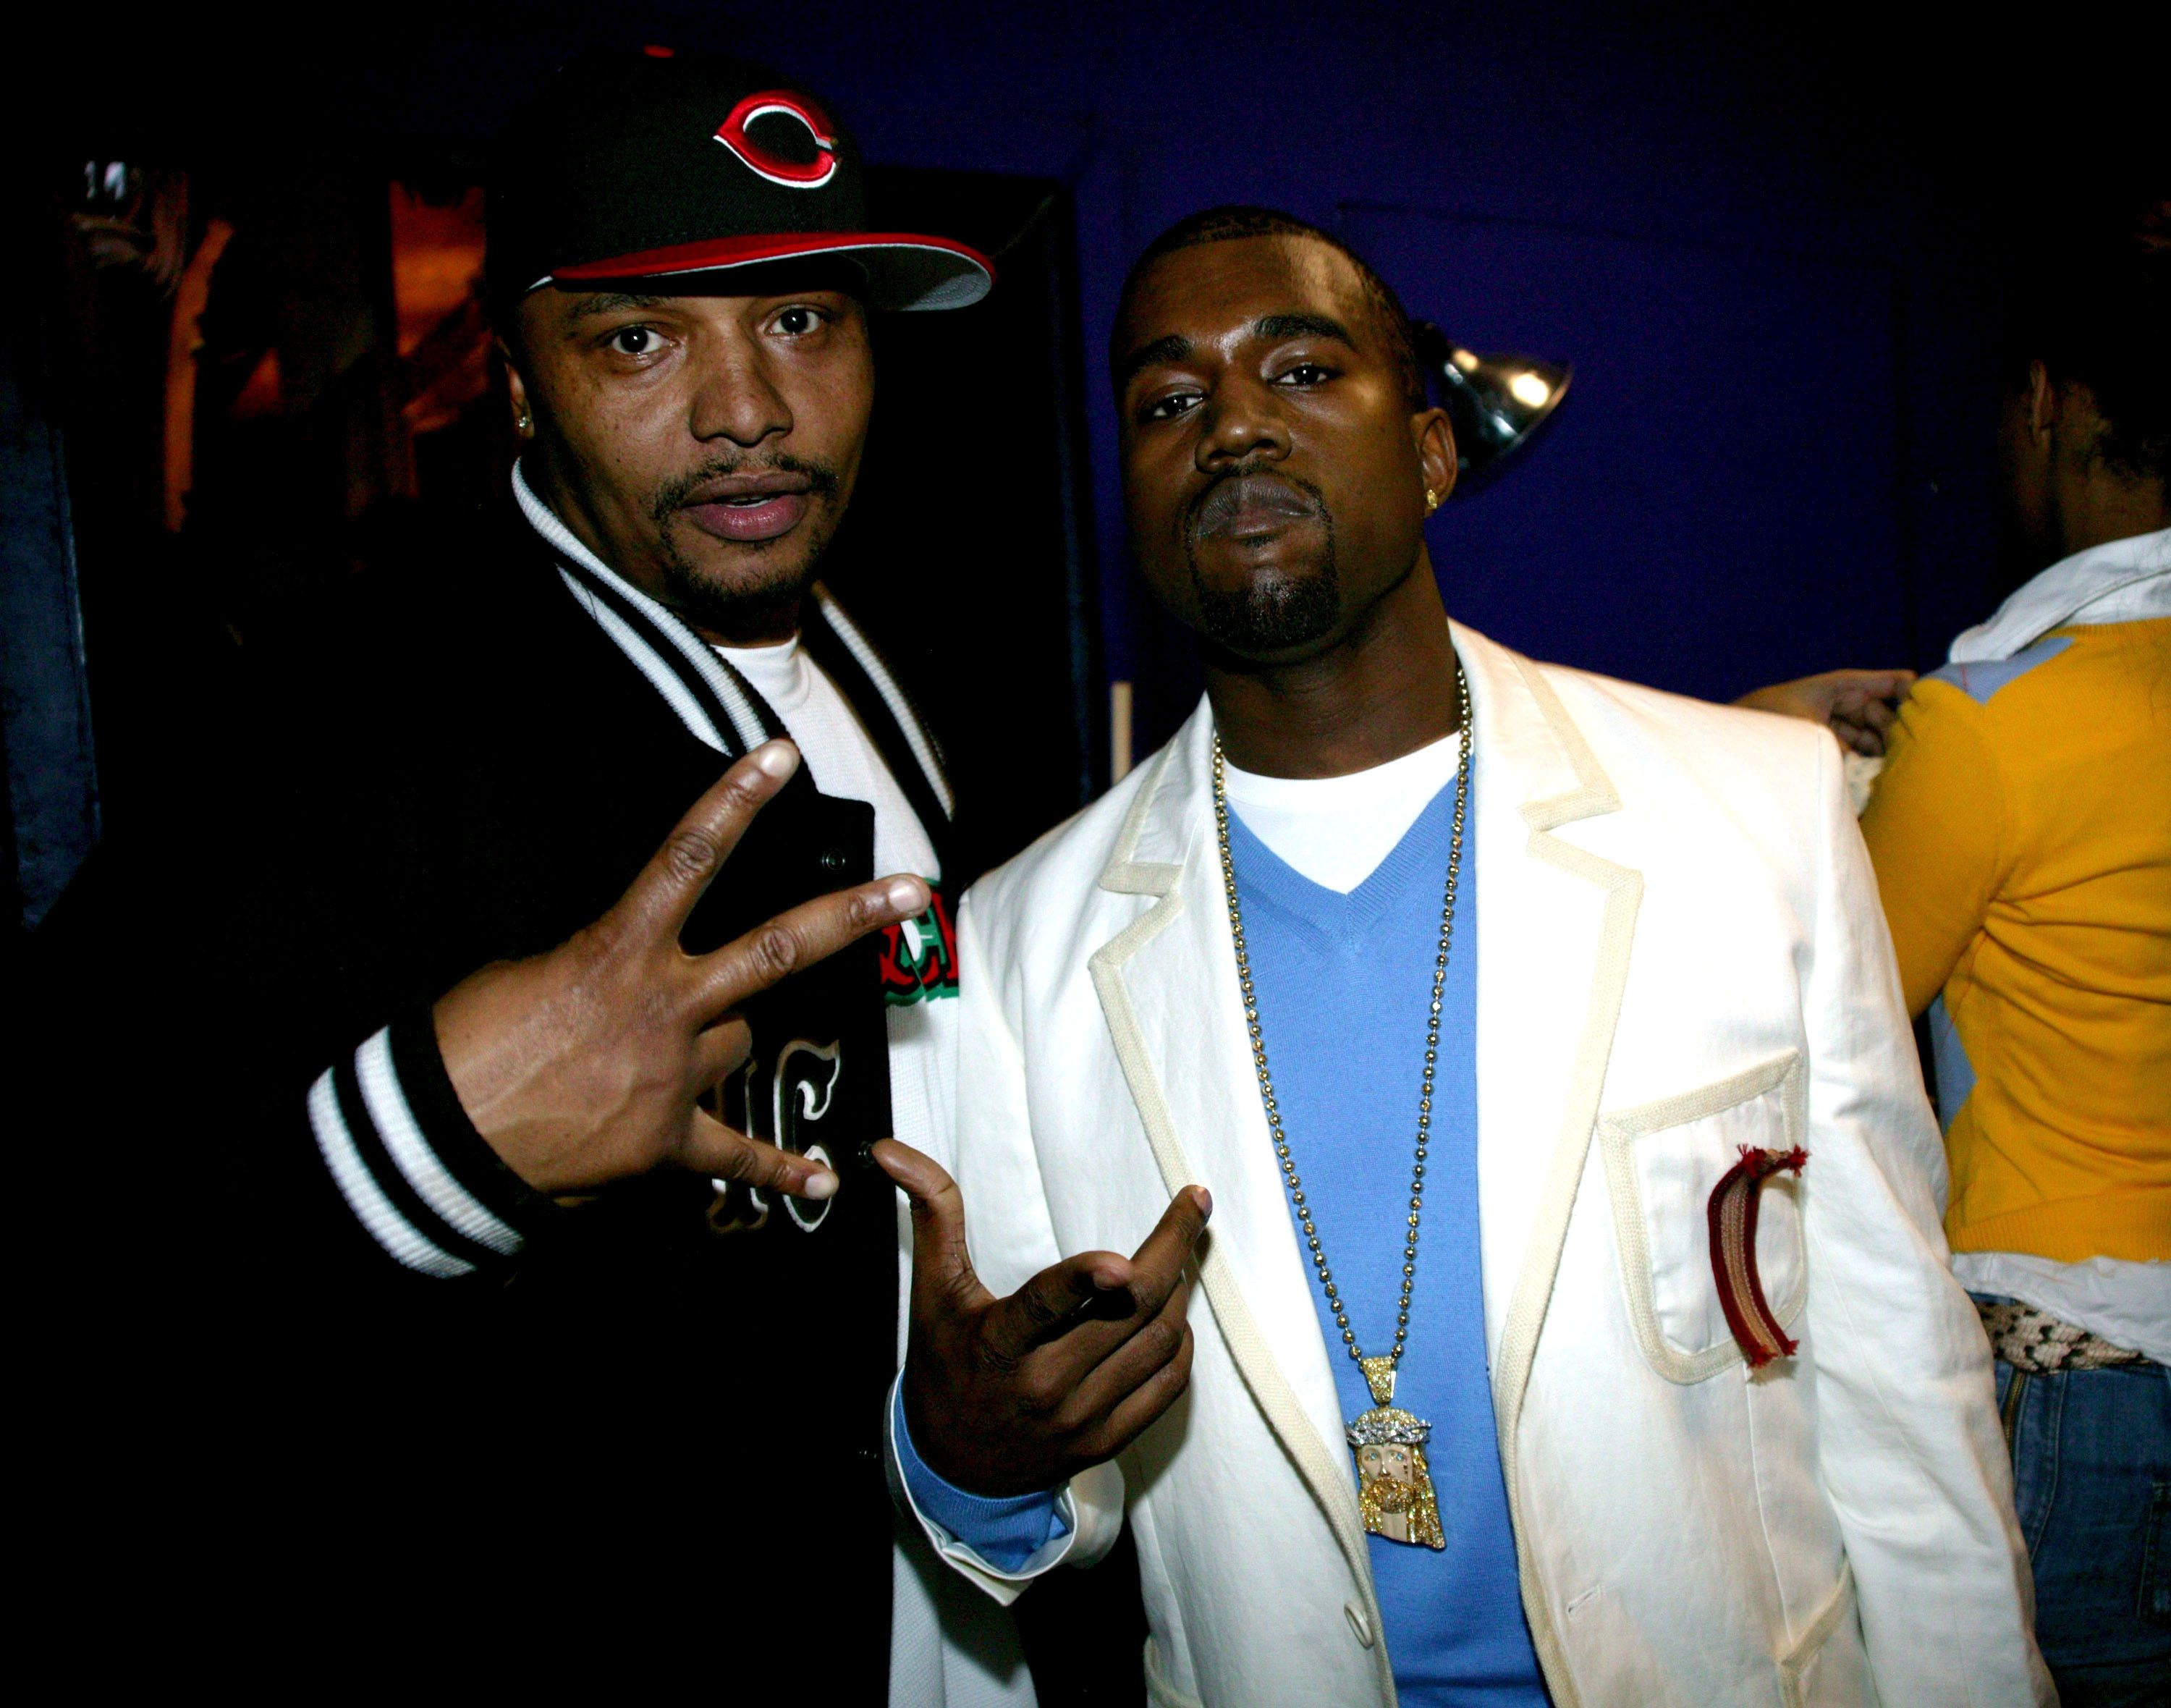 Malik Yusef and Kanye West have known each other for more than a decade. Here they are at the Def Poetry Jam in New York